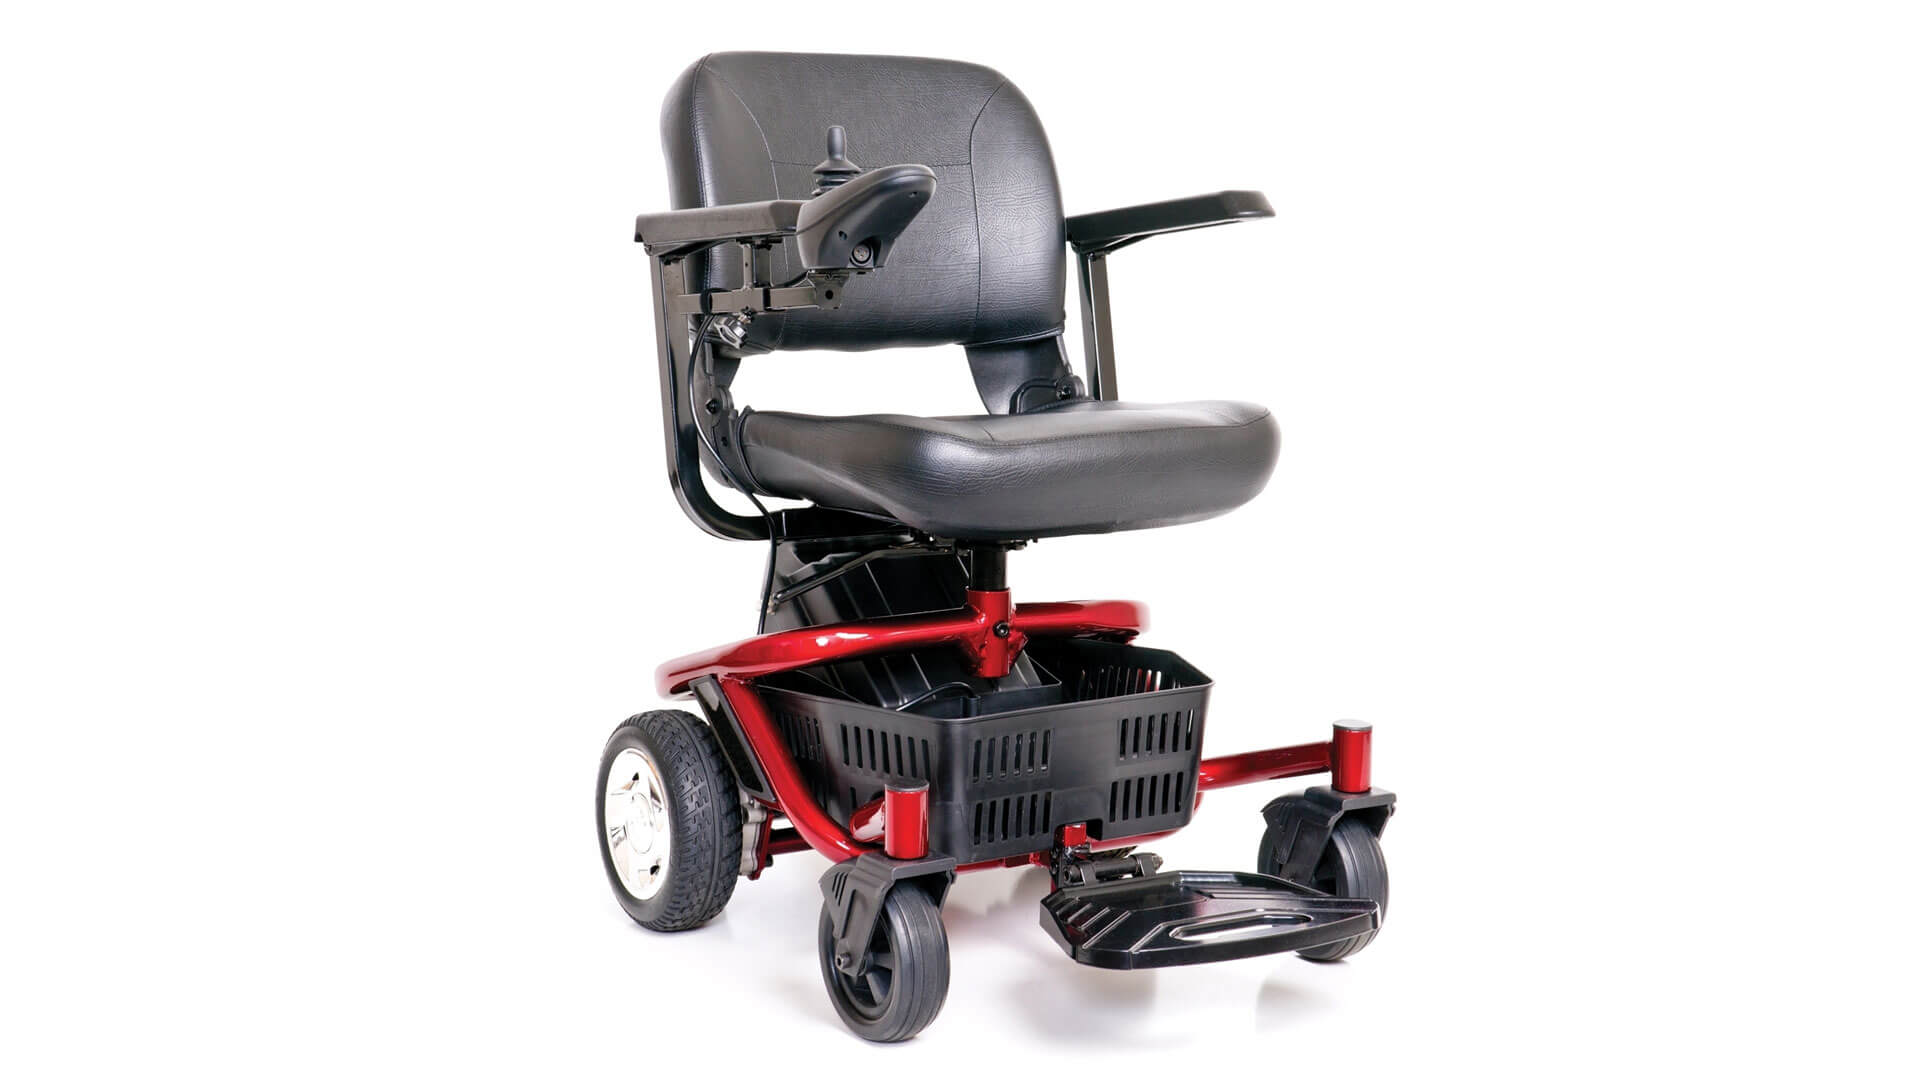 Best wheelchairs for travel LiteRider Gp162